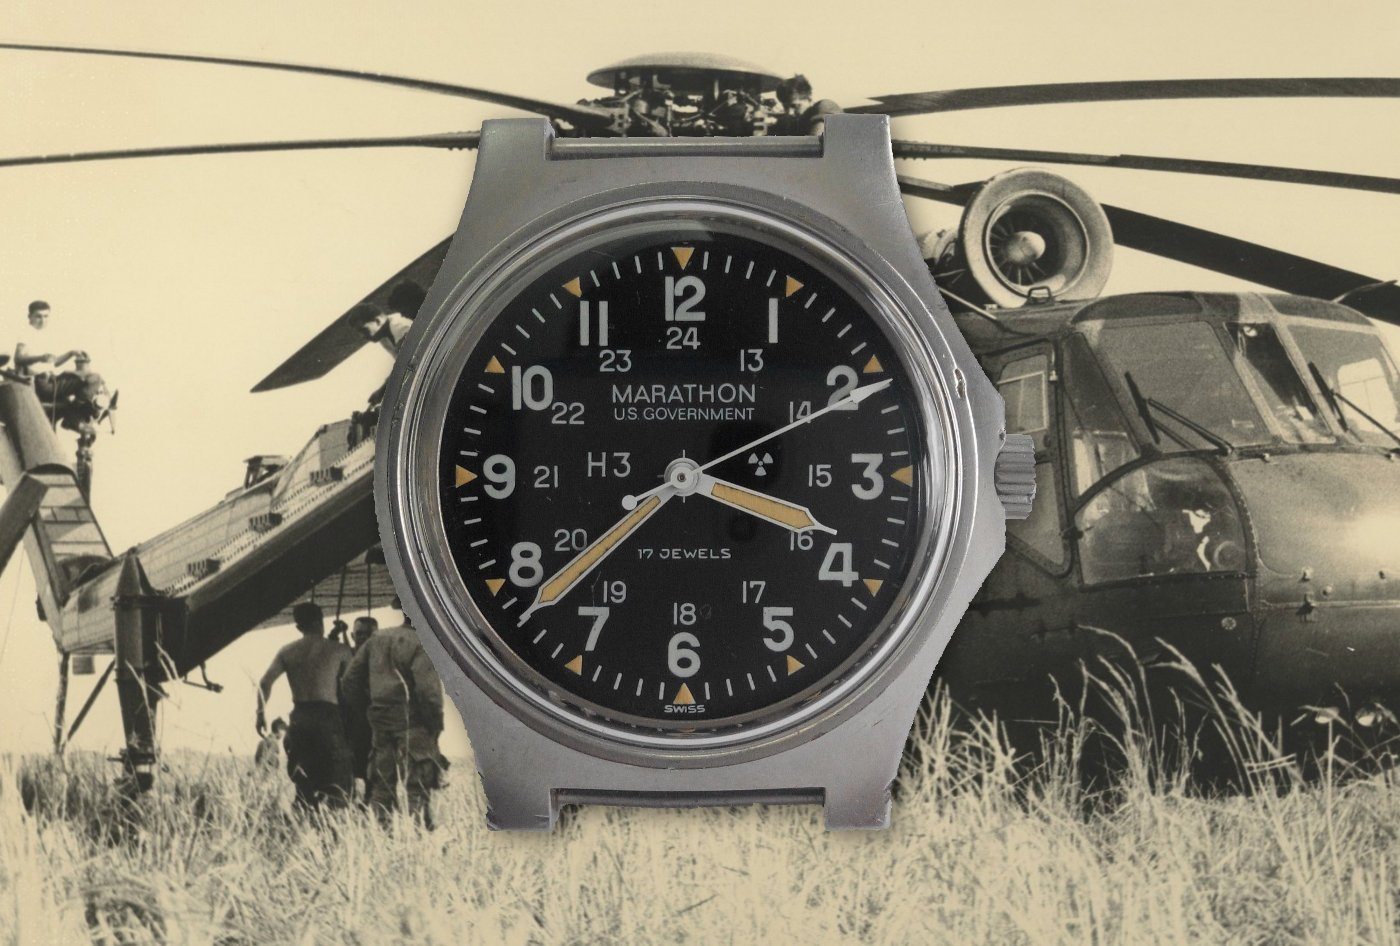 American Mil-Spec: A GG-W-113 Pilot Watch Buyers Guide